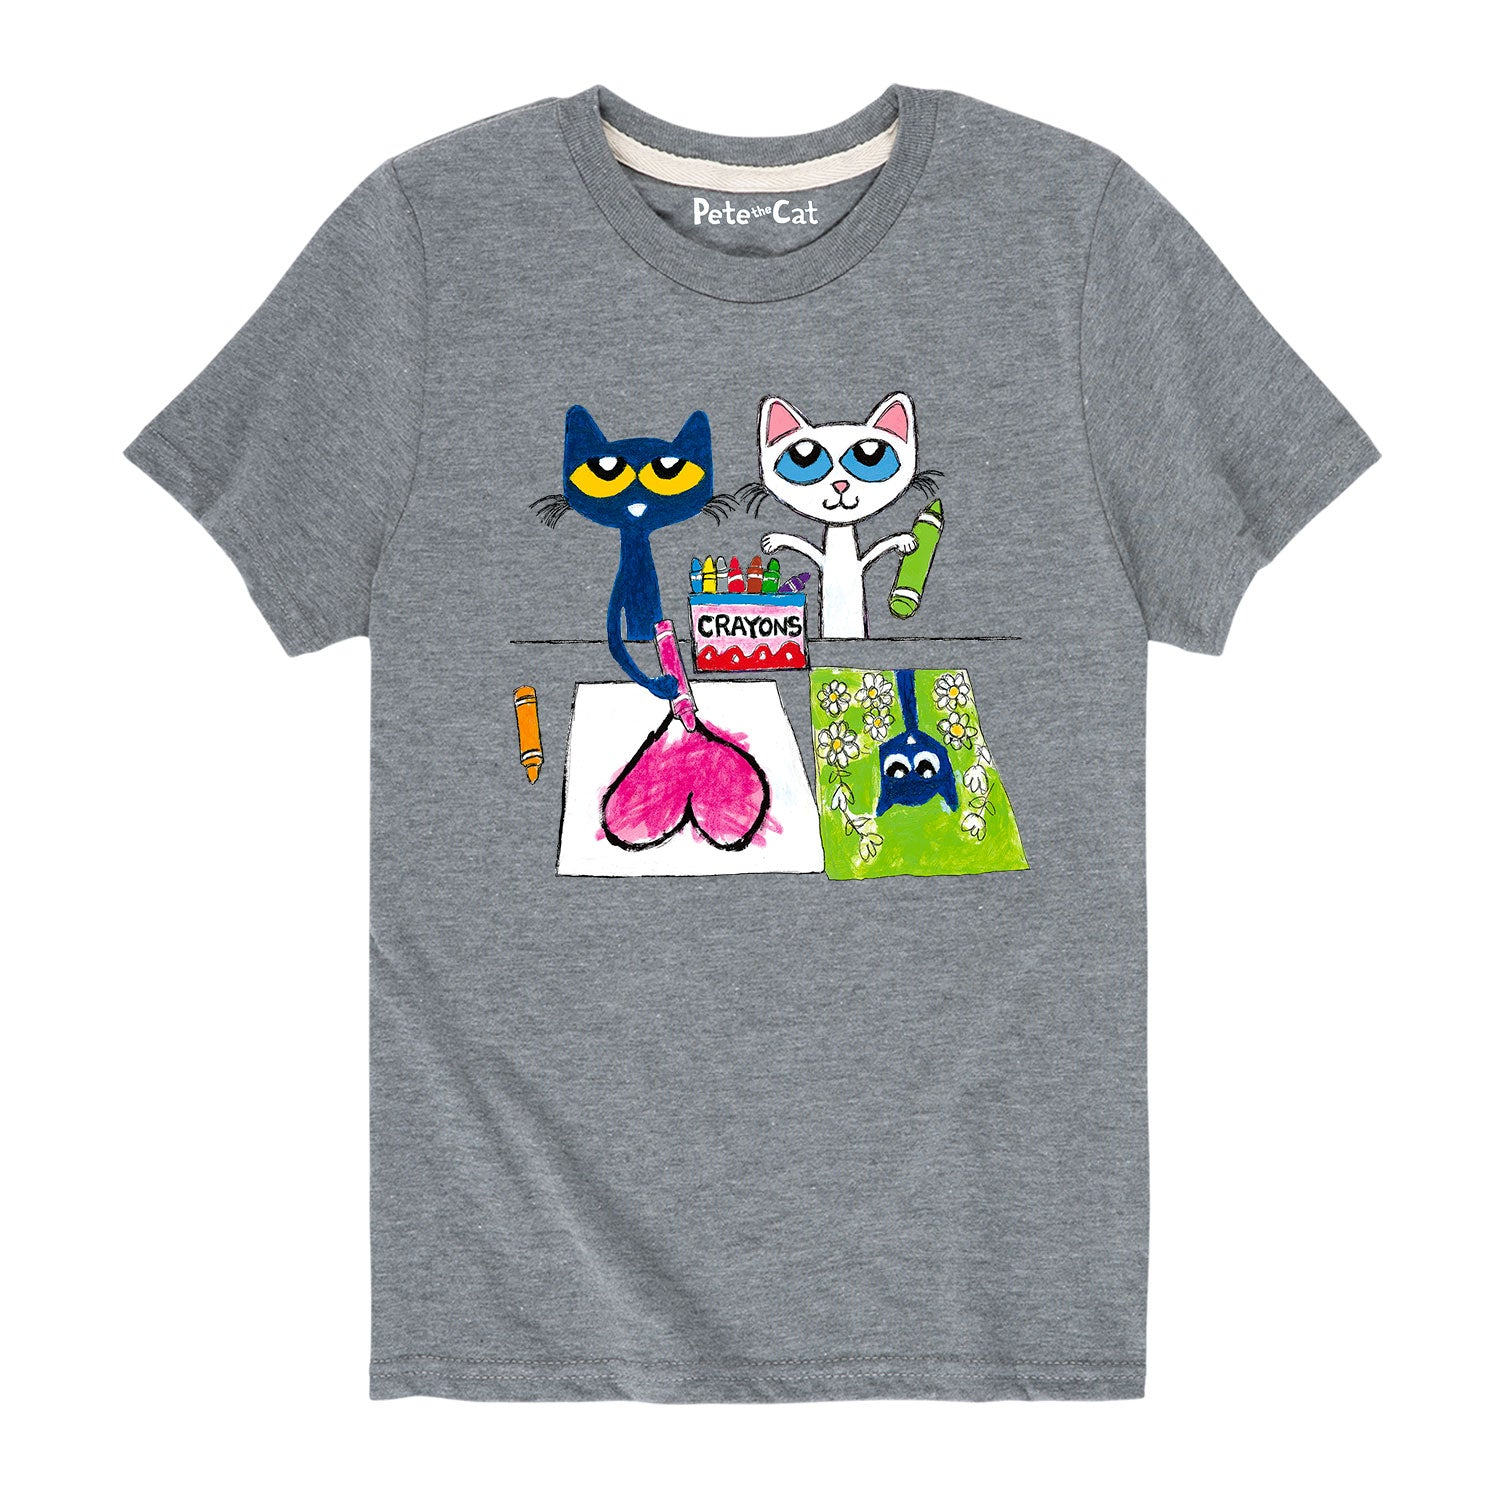 Pete And Calli Drawing - Youth & Toddler Short Sleeve T-Shirt